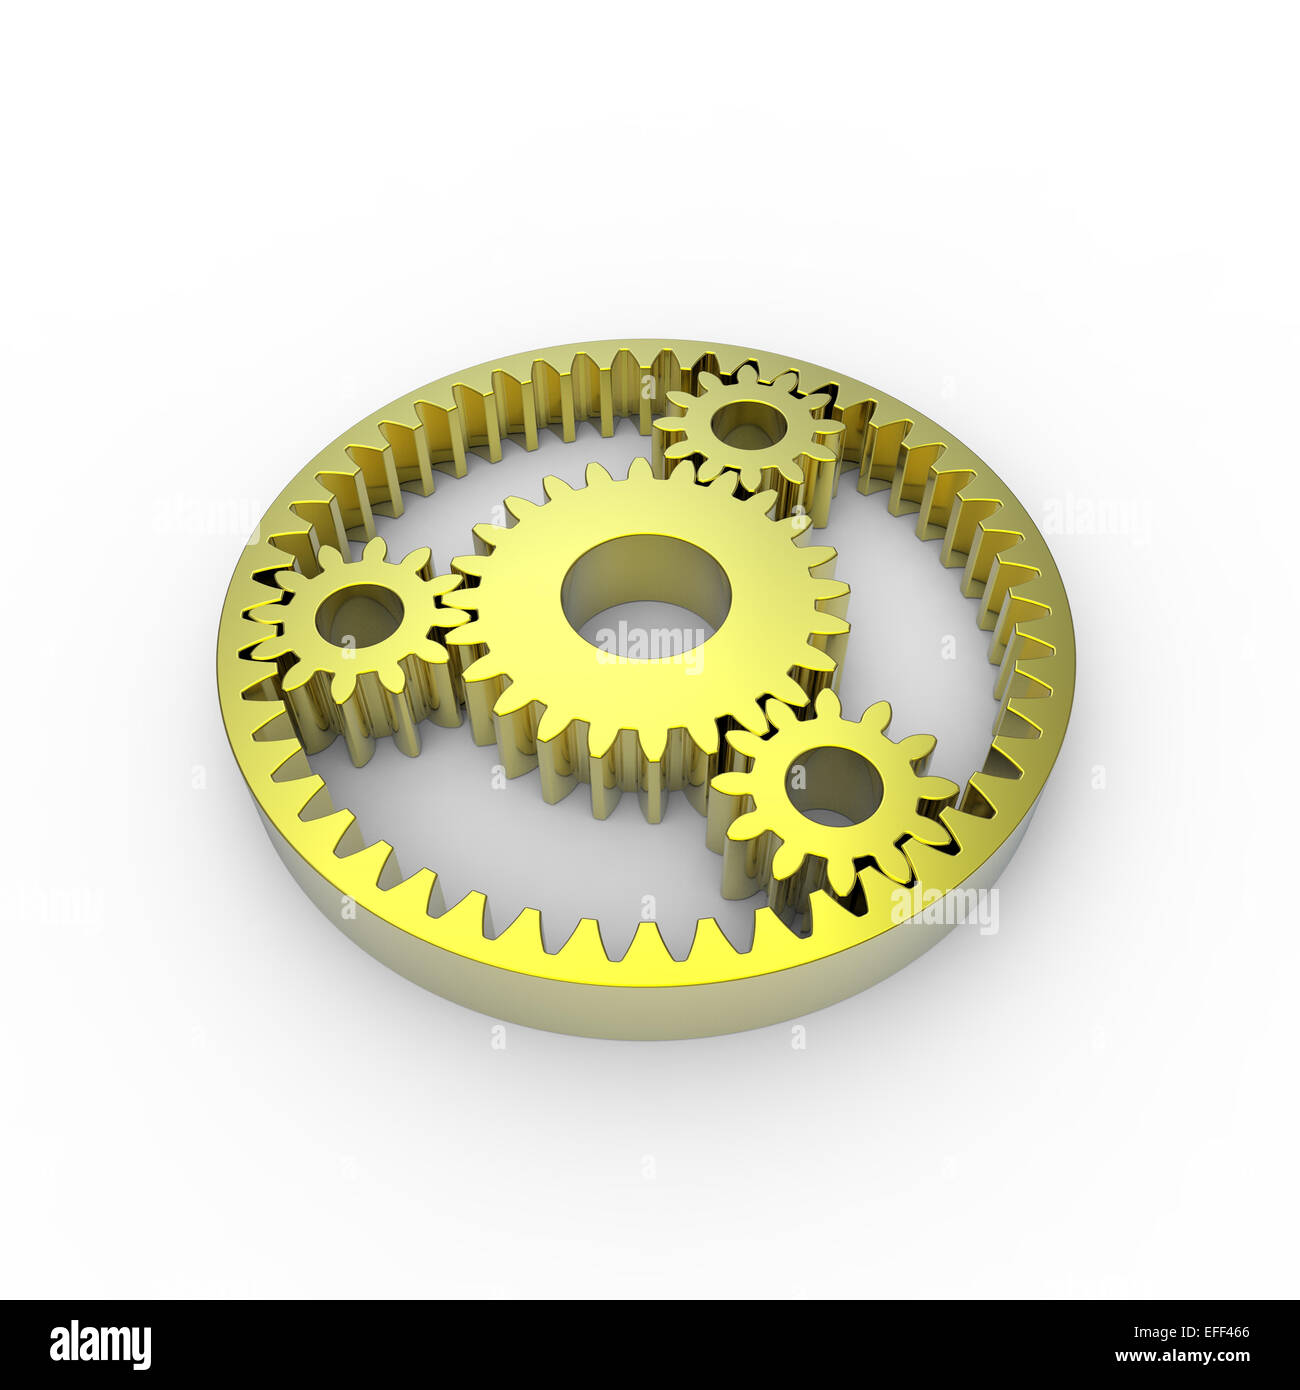 yellow anodized steel planetary gears on a white background - Stock Image